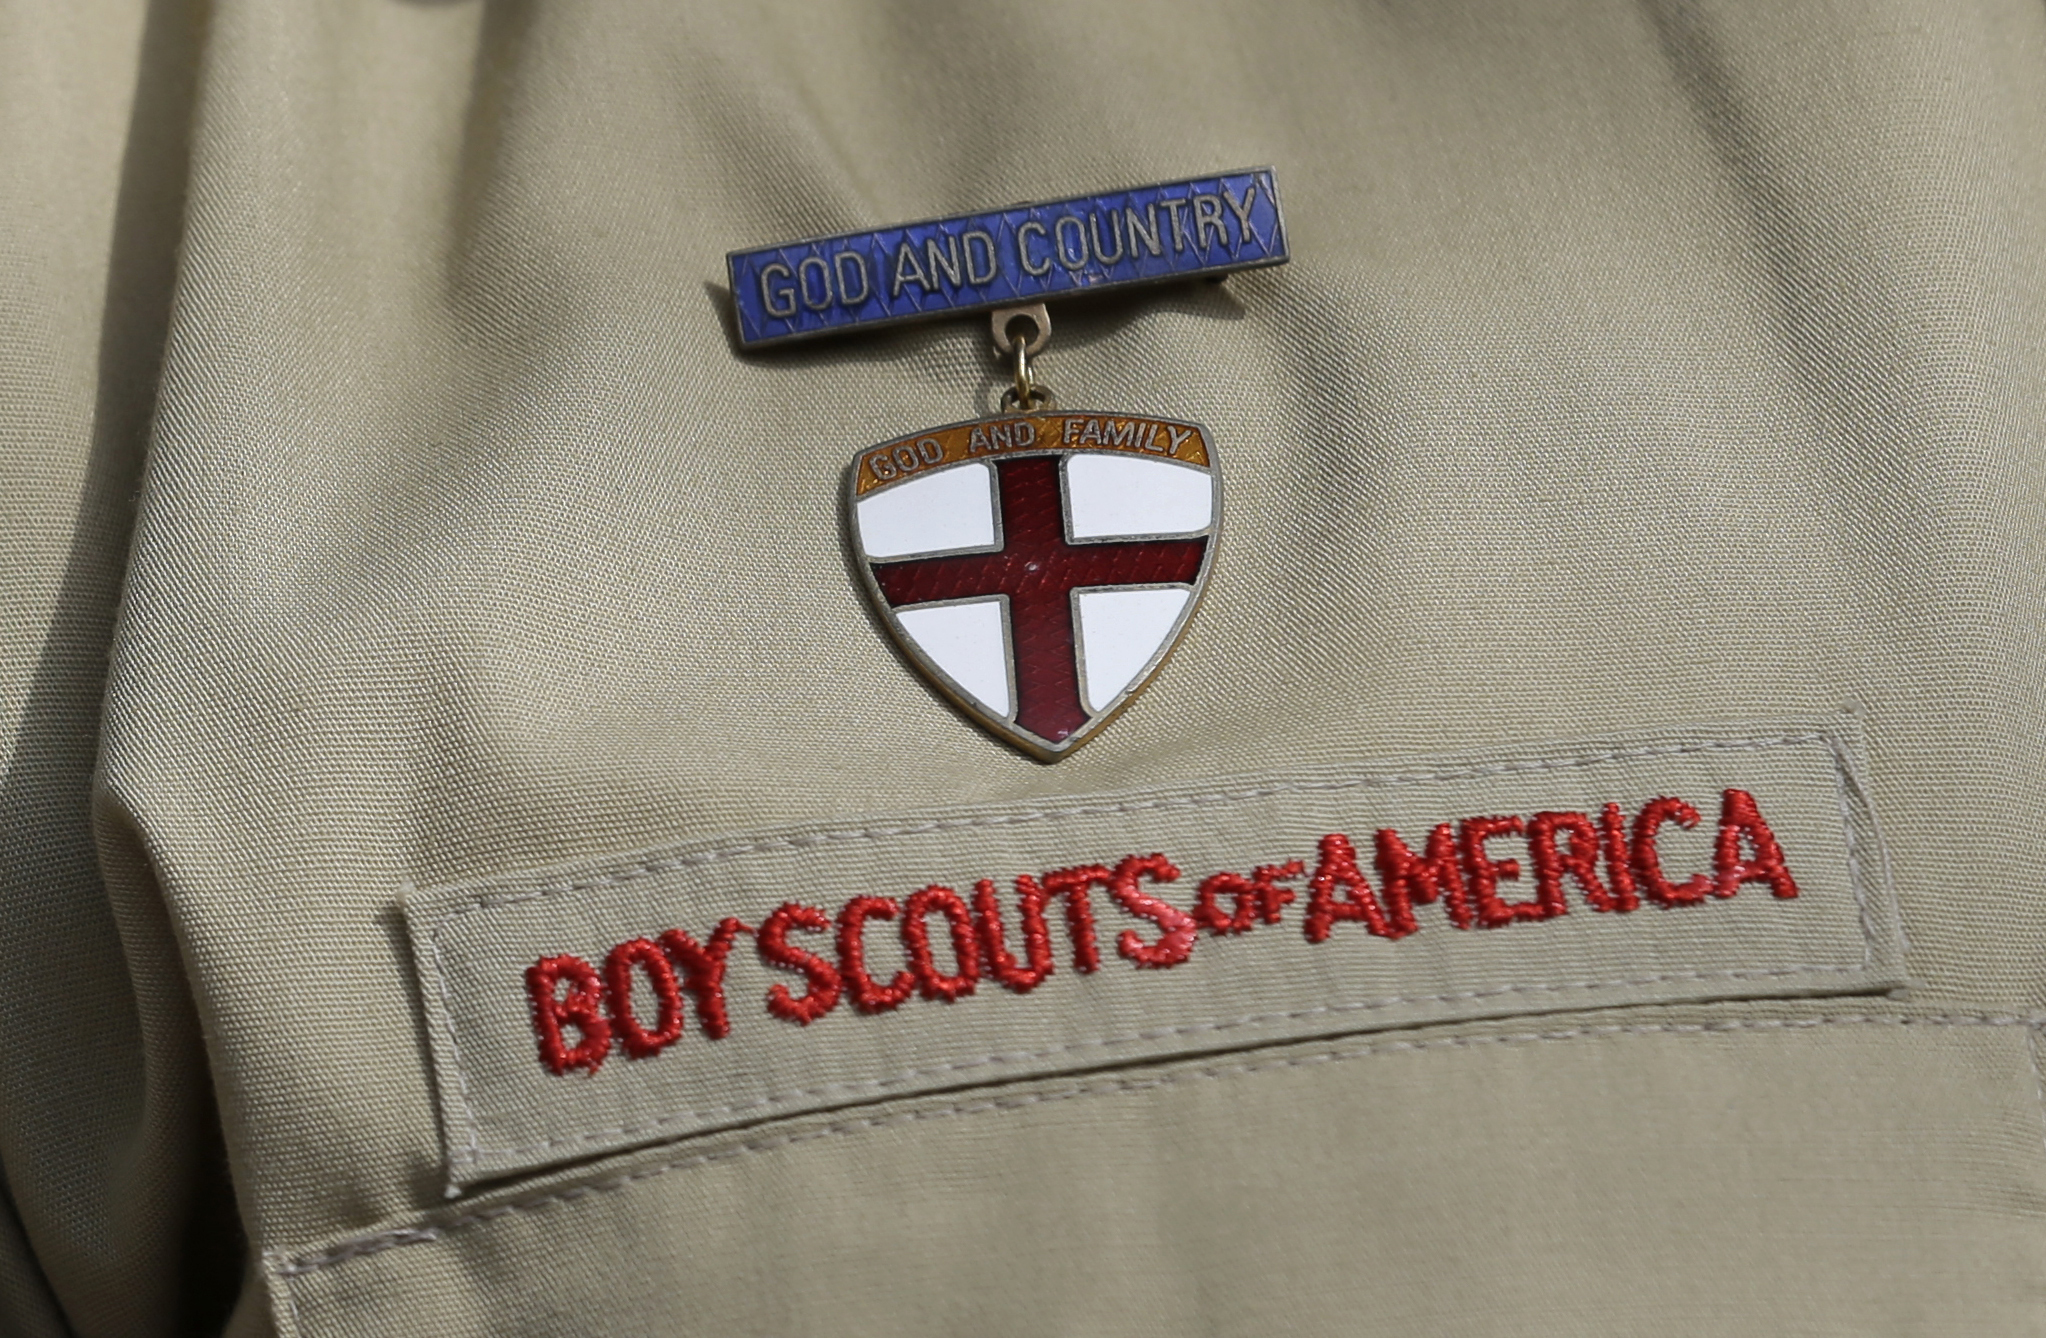 Here's why N.J. may be hit with more Boy Scout sex abuse lawsuits than any other state